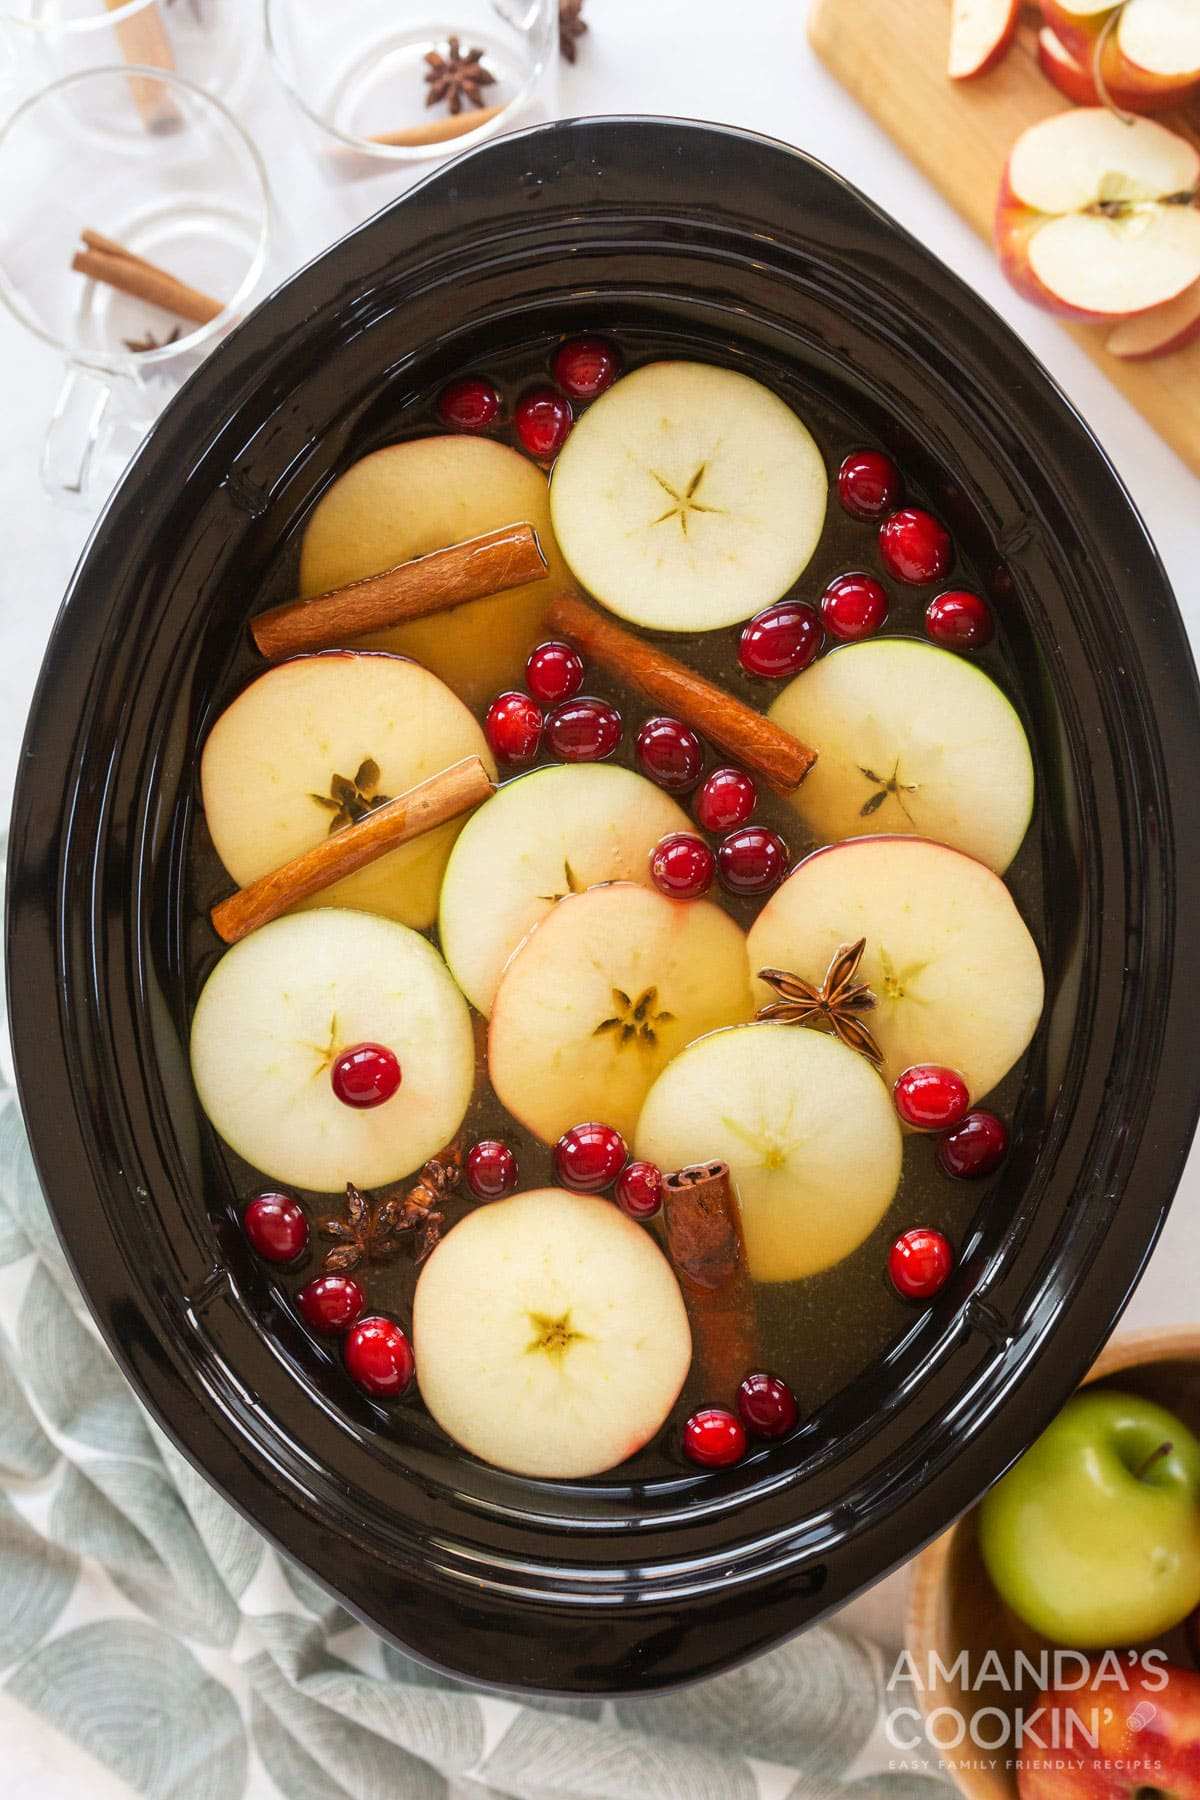 hot apple cider with garnishes in a crockpot